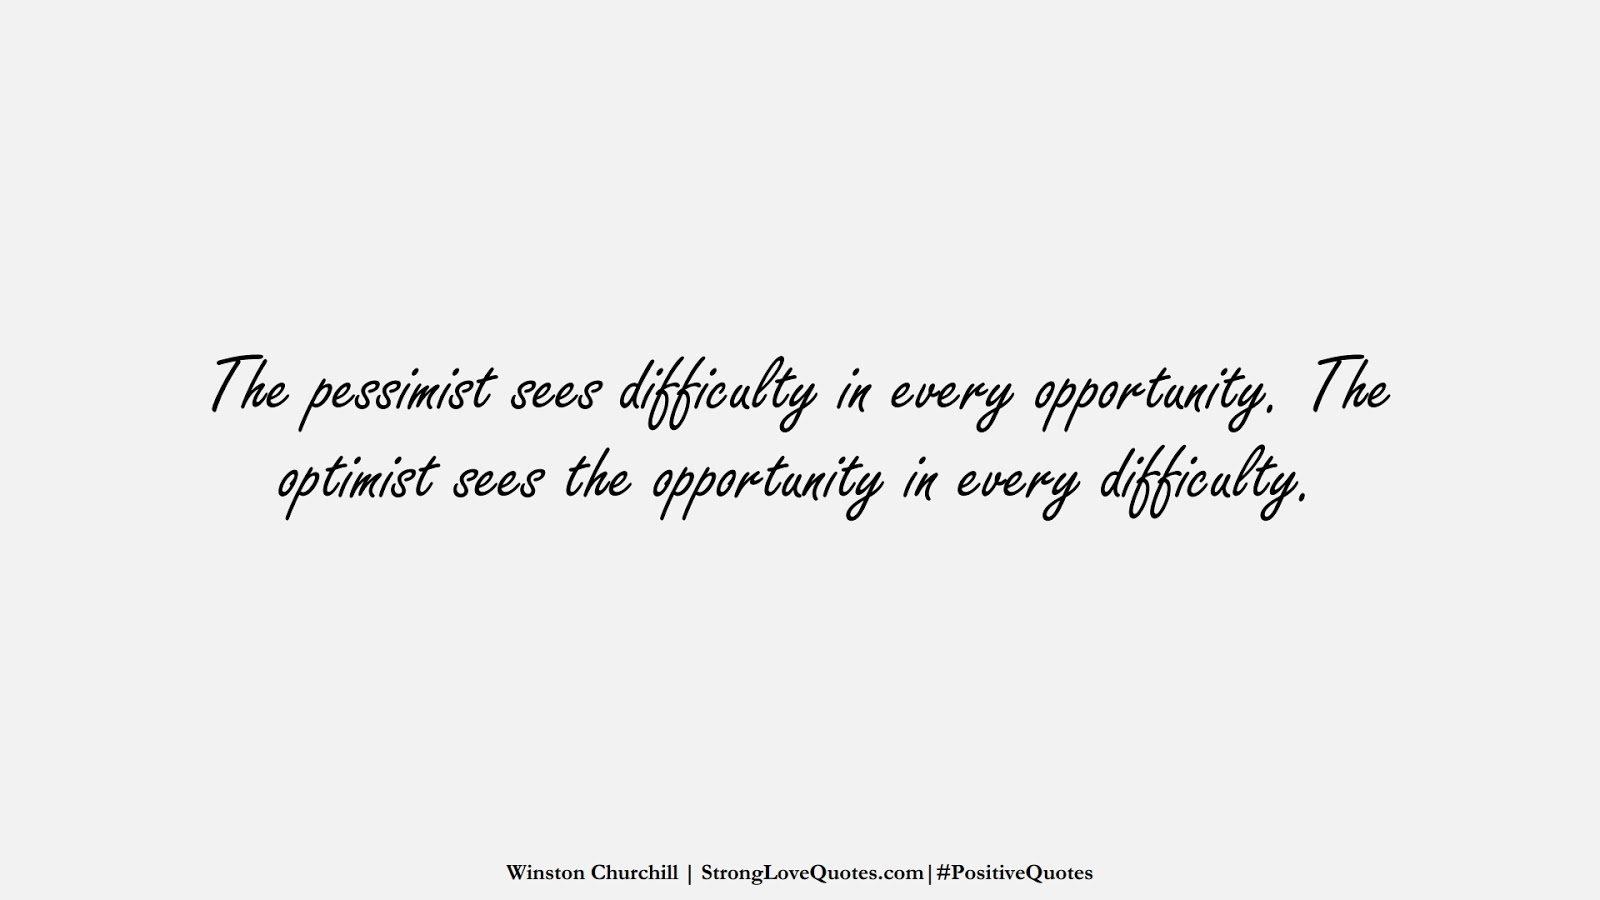 The pessimist sees difficulty in every opportunity. The optimist sees the opportunity in every difficulty. (Winston Churchill);  #PositiveQuotes